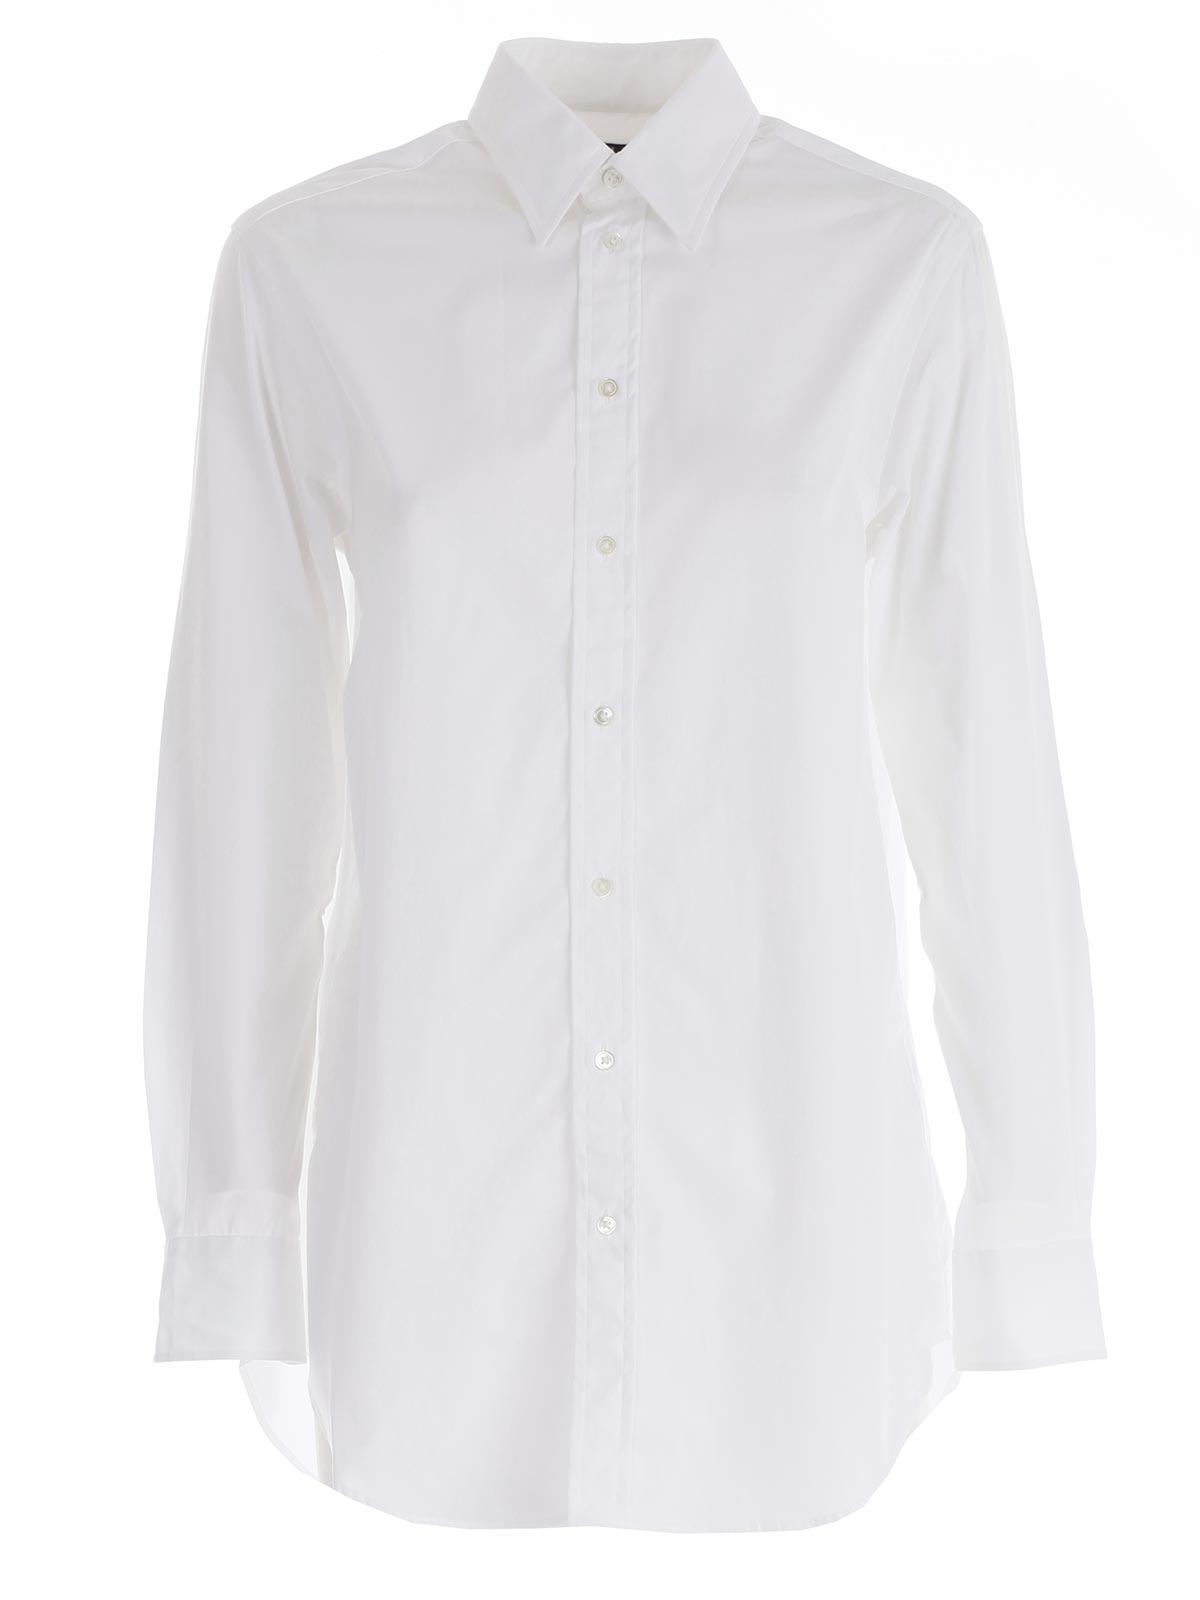 Picture of POLO RALPH LAUREN SHIRTS LONG SLEEVE OVER SHIRT